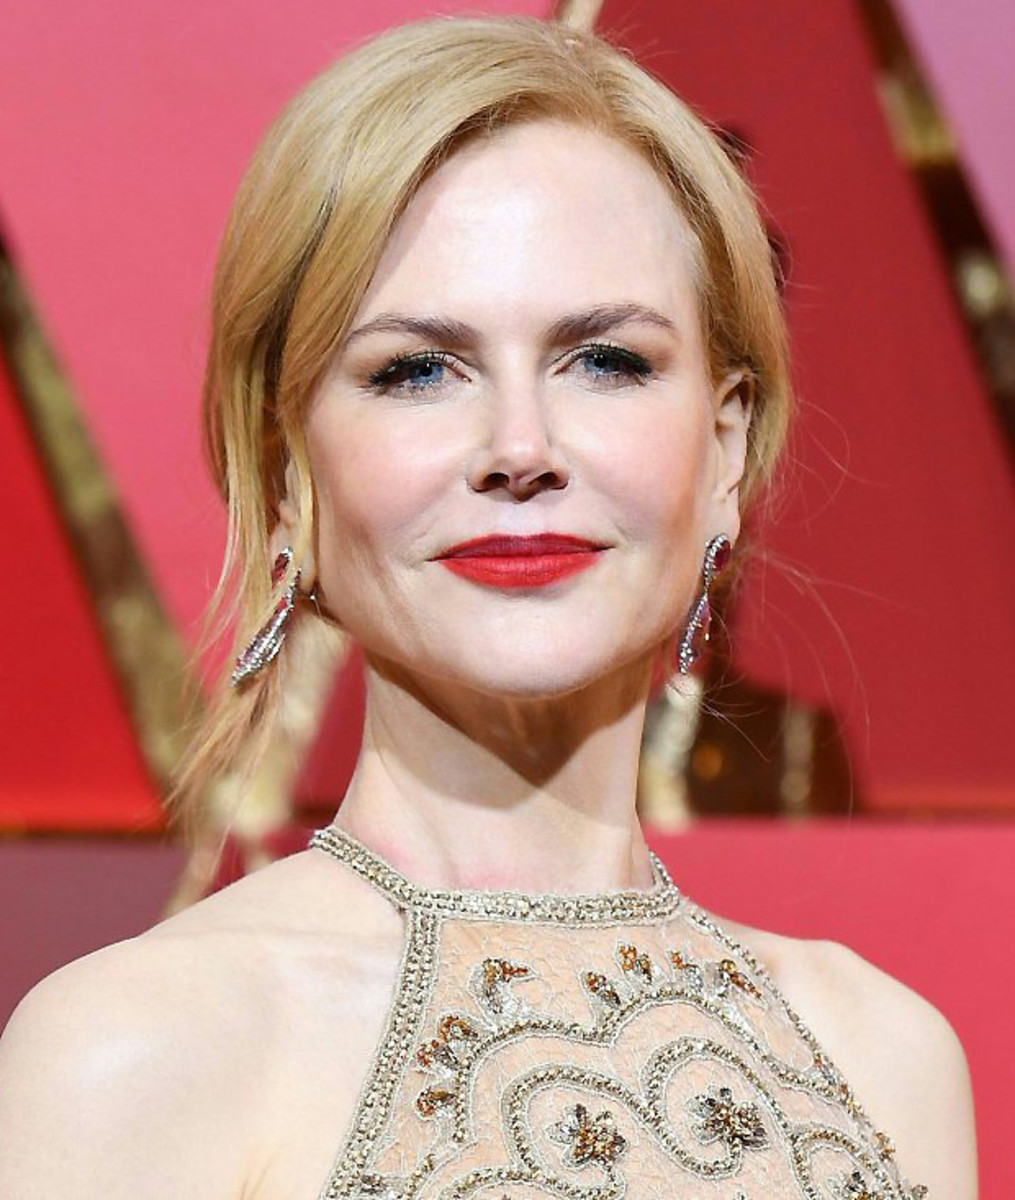 At the 2017 Oscars, Nicole Kidman wore Neutrogena and Giorgio Armani with her Armani Privé gown.